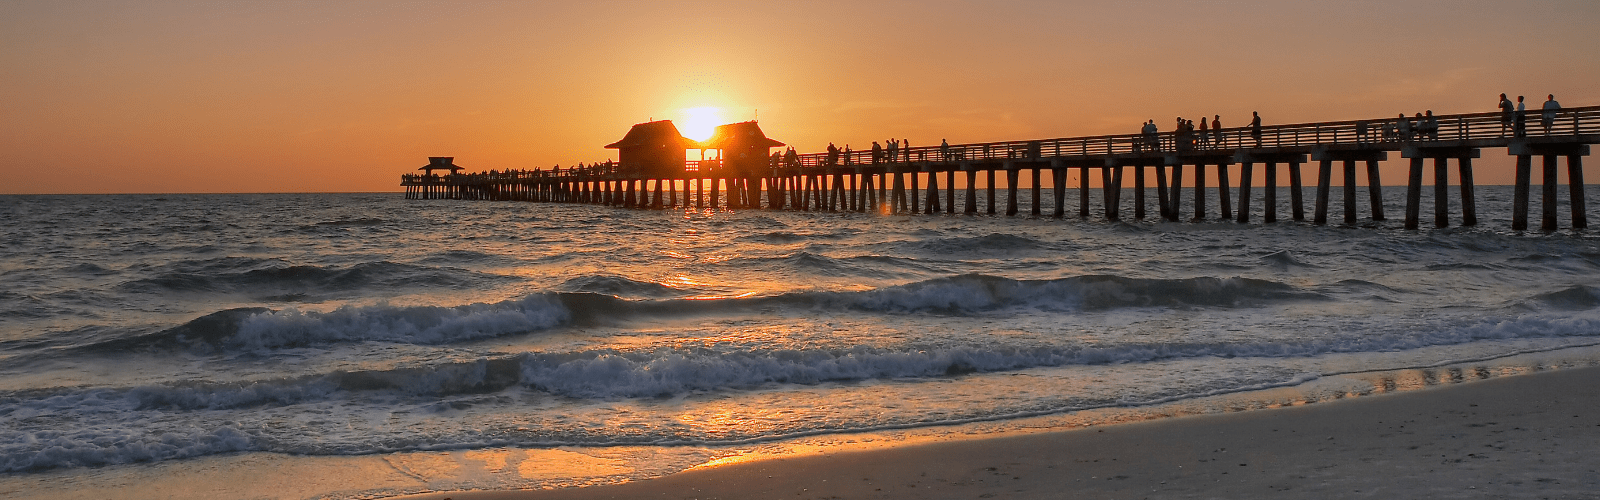 Sunset image over the Naples Pier in Naples Florida